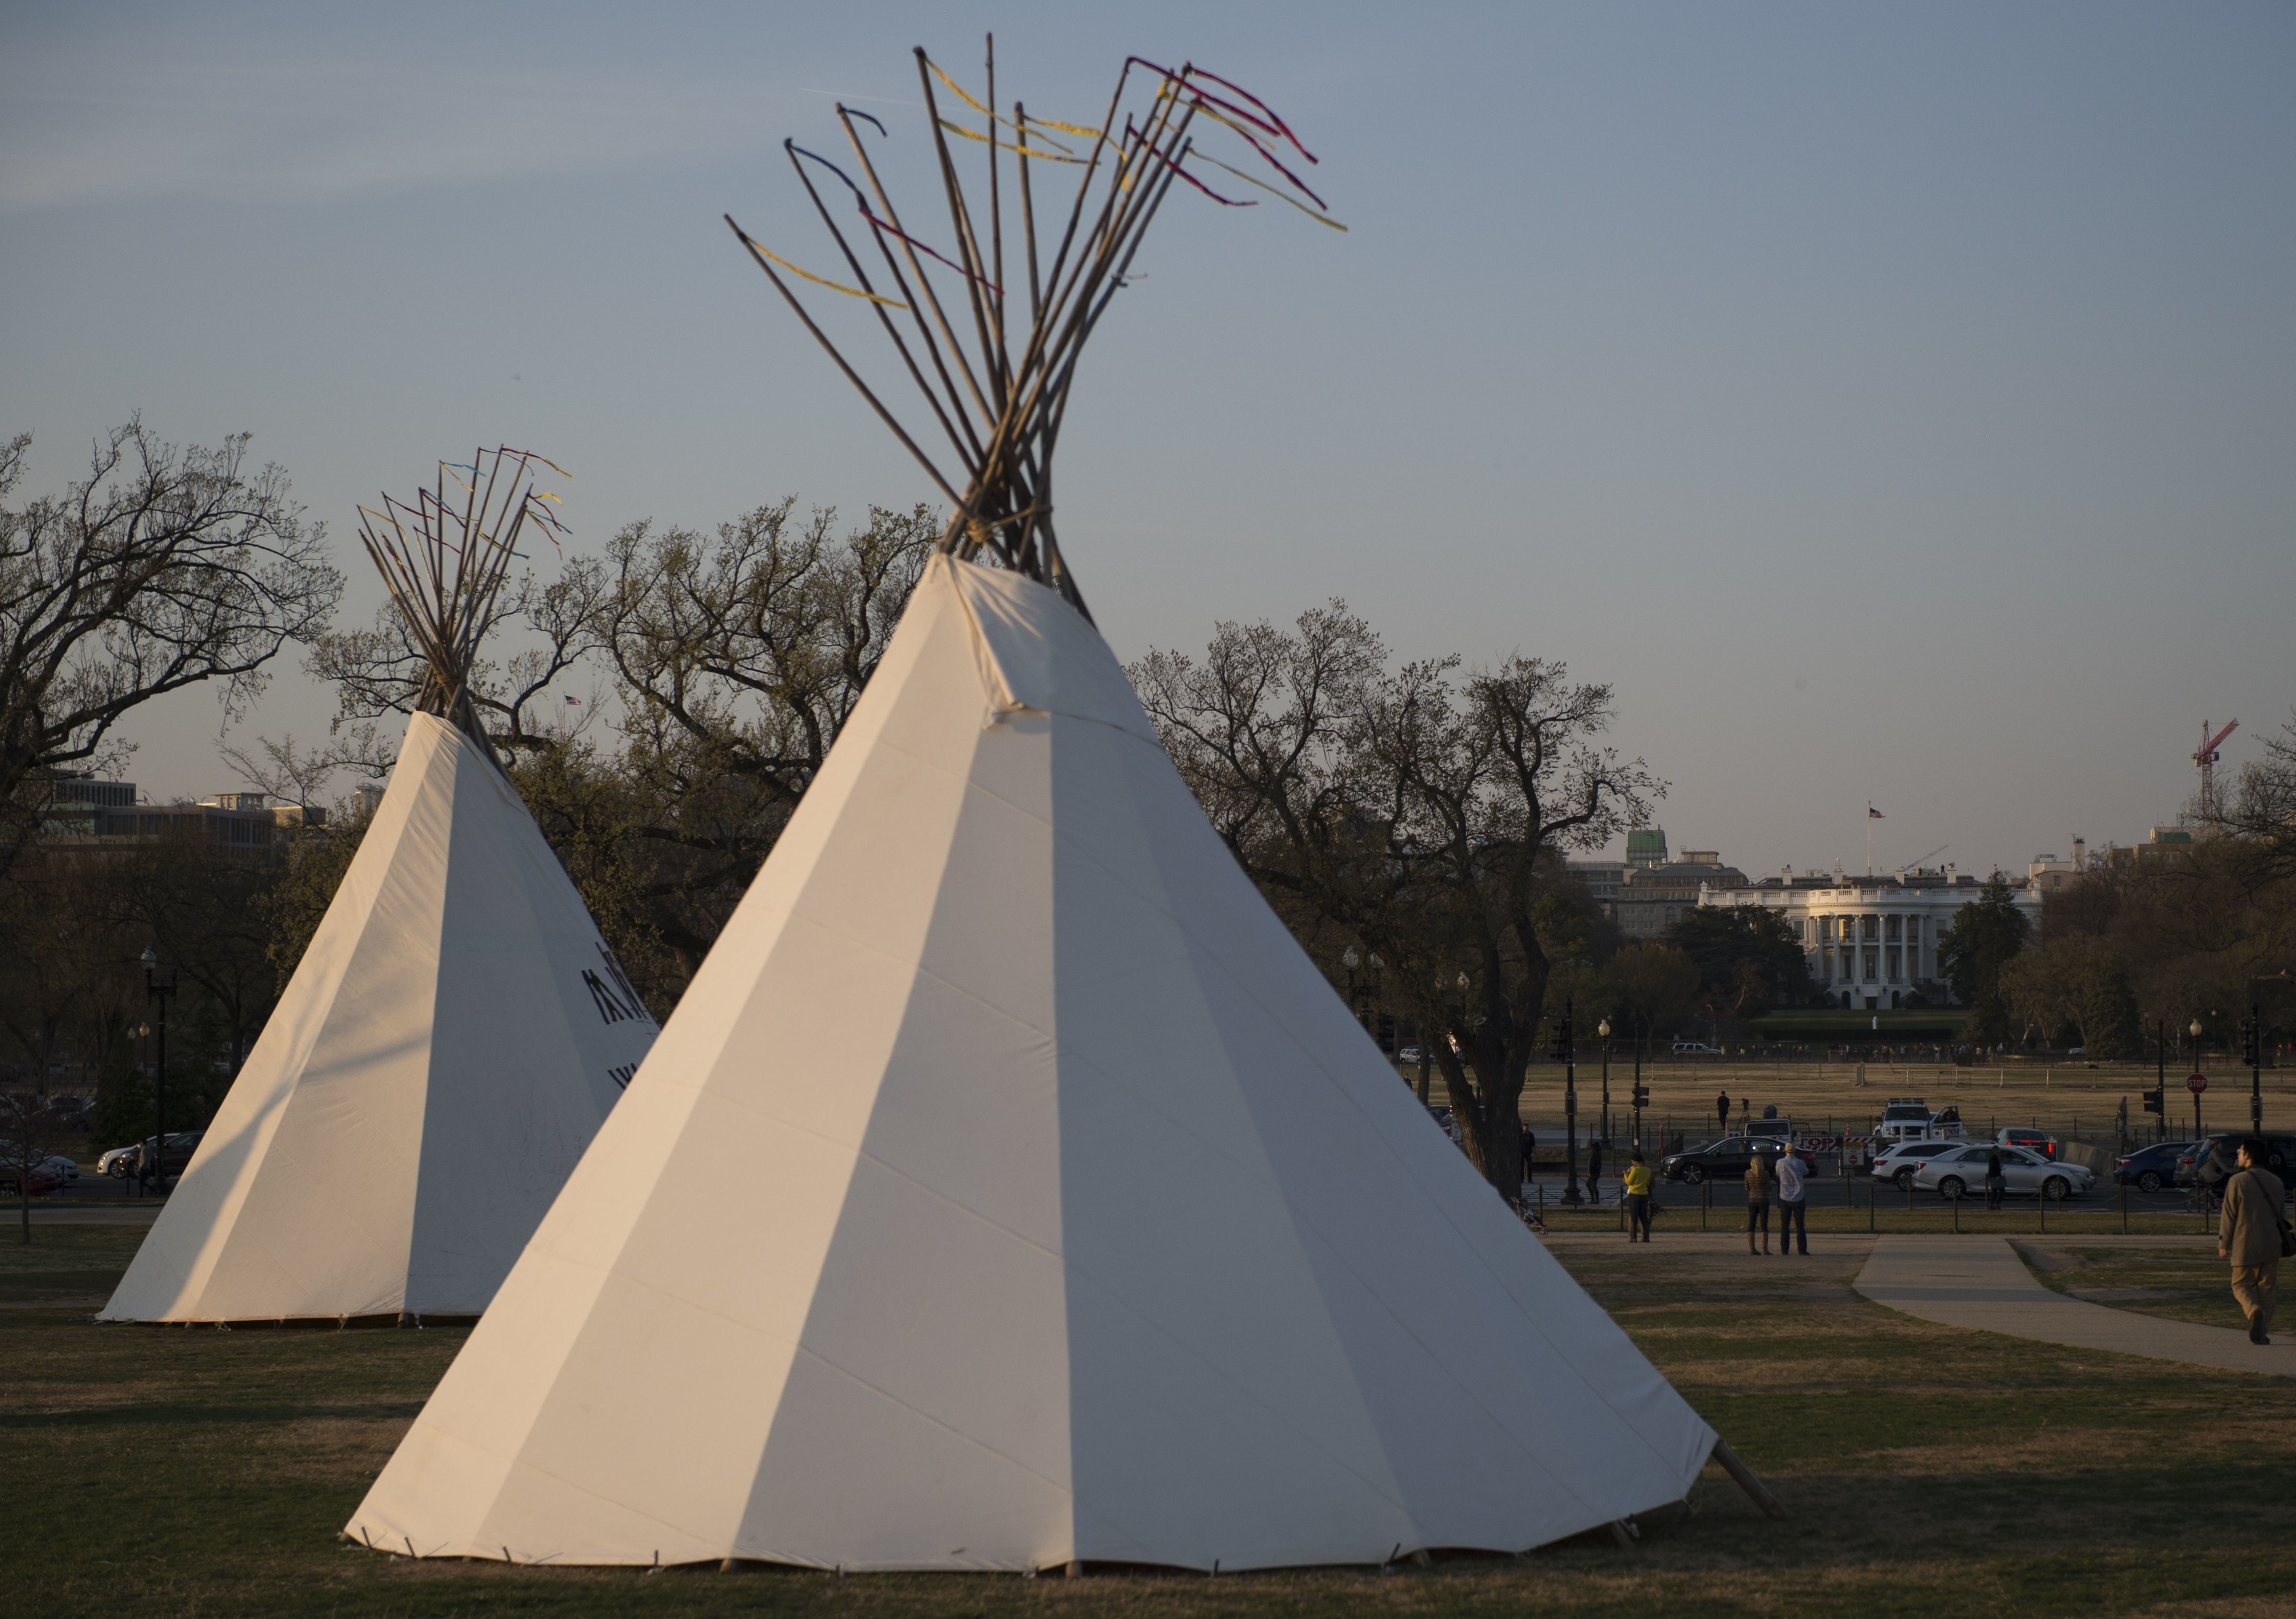 Teepees were erected on the National Mall near the White House as tribes from around the U.S. gathered for four days of